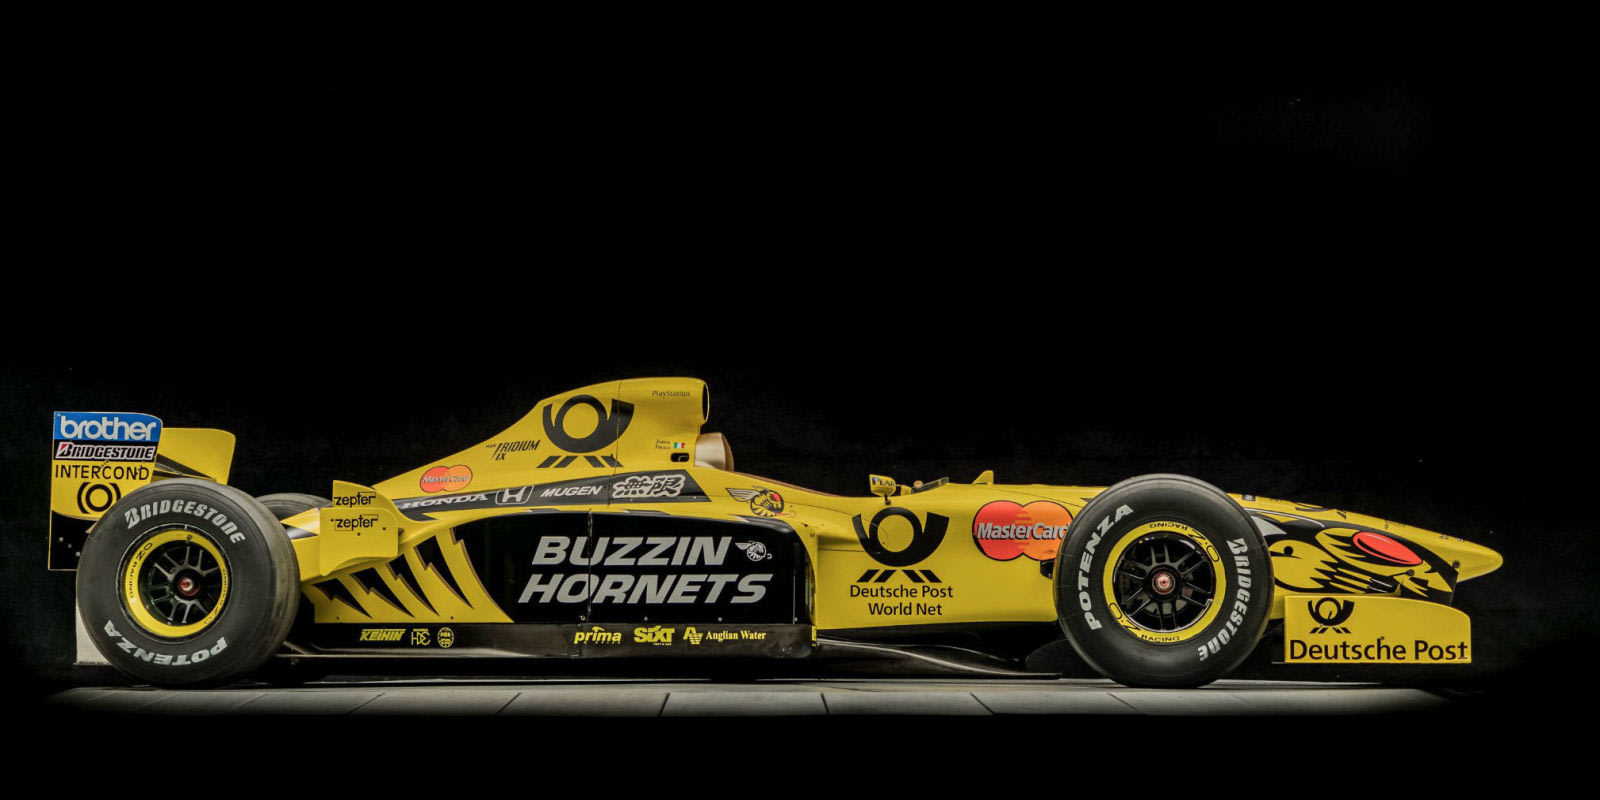 Honda Union City >> The Buzzin'est of Hornets: Jordan F1's 1999 Race Car Is Up For Auction - Yahoo Sport